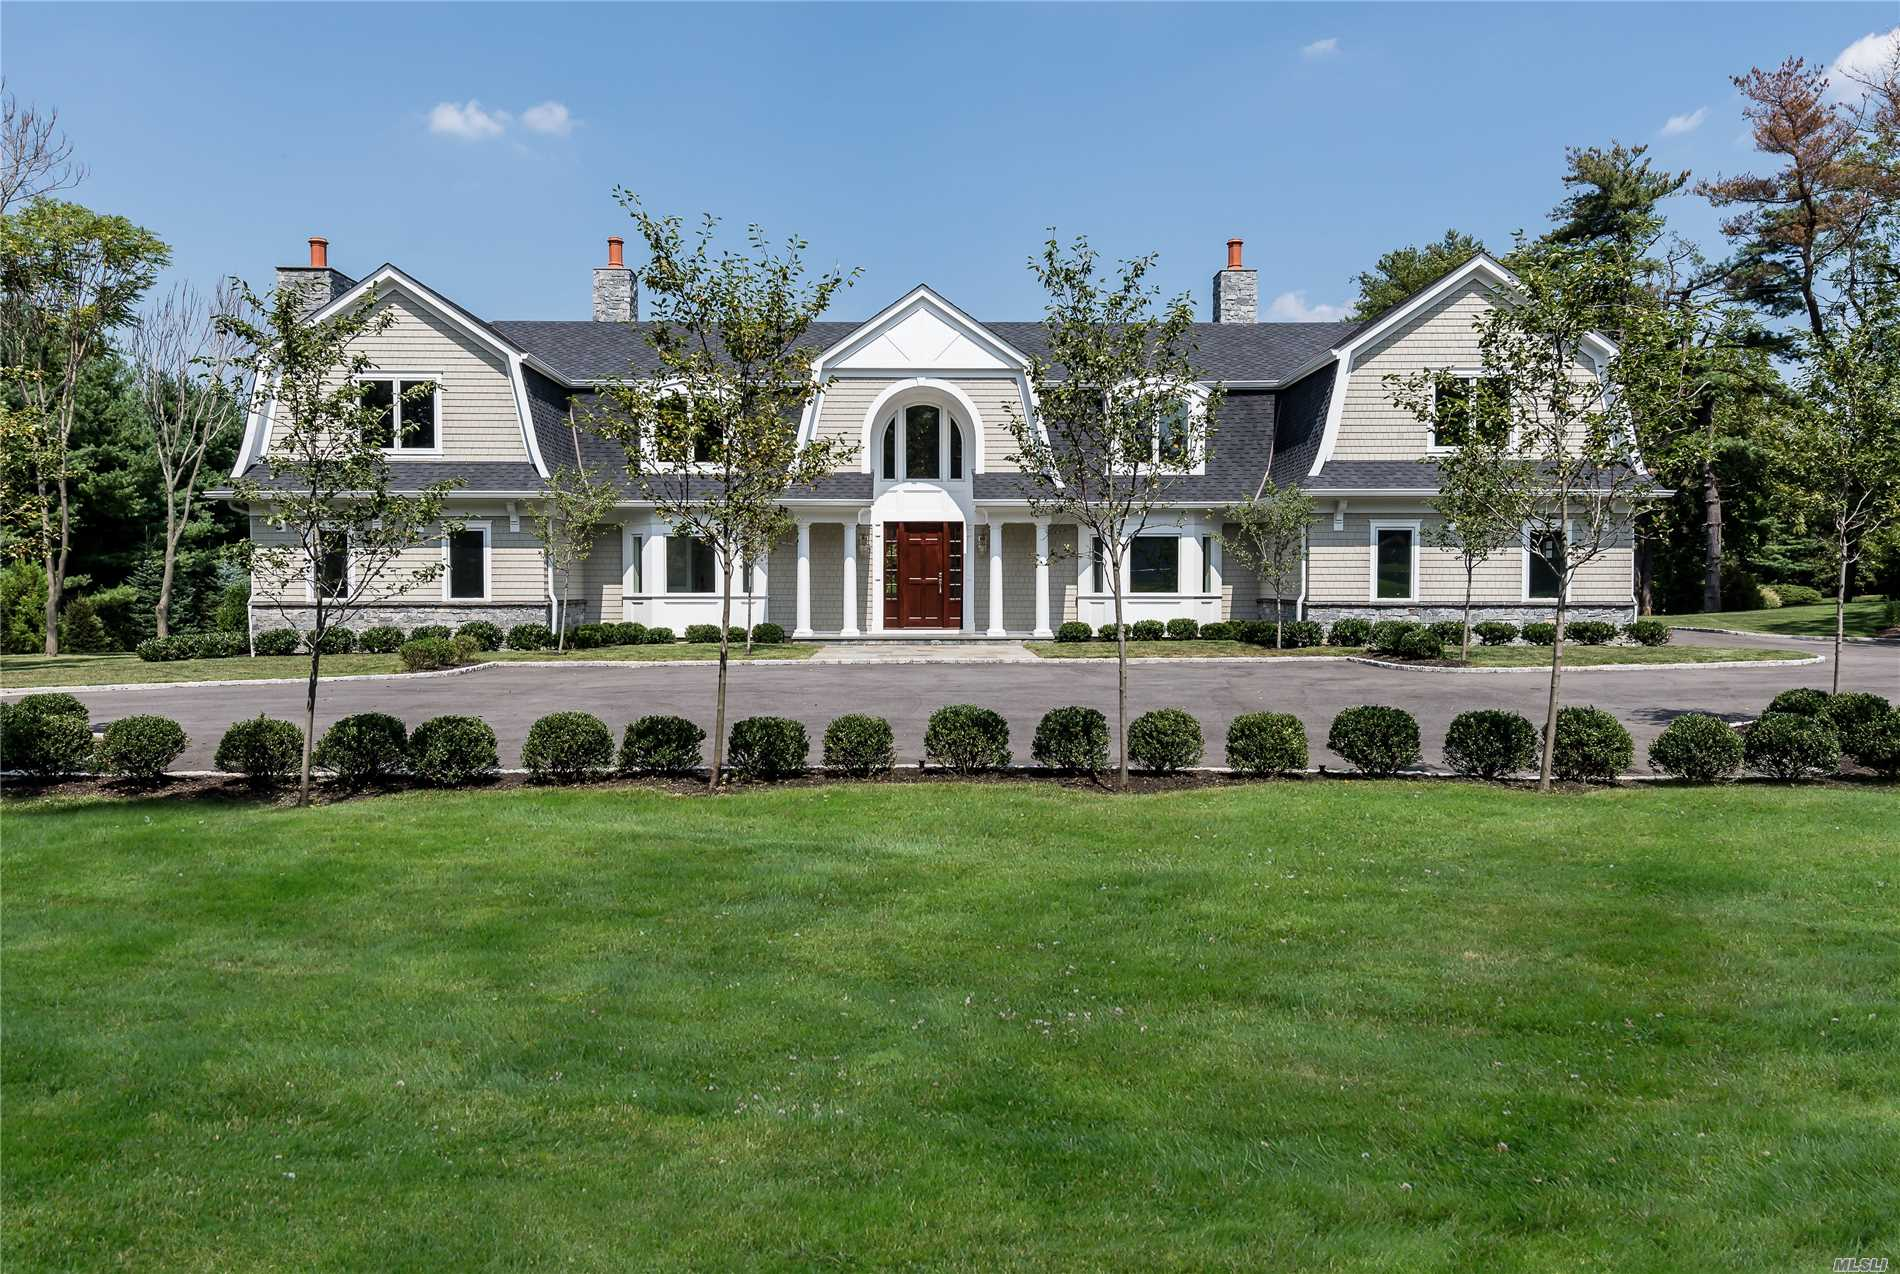 Majestically Situated On The North Shore Of Long Island In A Prestigious Gold Coast Village, This Sophisticated Home Sits On Level Park-Like Grounds In A Tranquil Cul-De-Sac. Natural Stone And Shake Exterior Meet Luxurious Appointments And State Of The Art Amenities. Walking Through This Elegant Home Which Combines Grand Spaces With Intimately Proportioned Private Spaces, You Will Be Warmed By One Of The Three Fireplaces, Sunlit Sumptuous Bedrooms Emulates Serenity, Each With En Suite Marble Baths